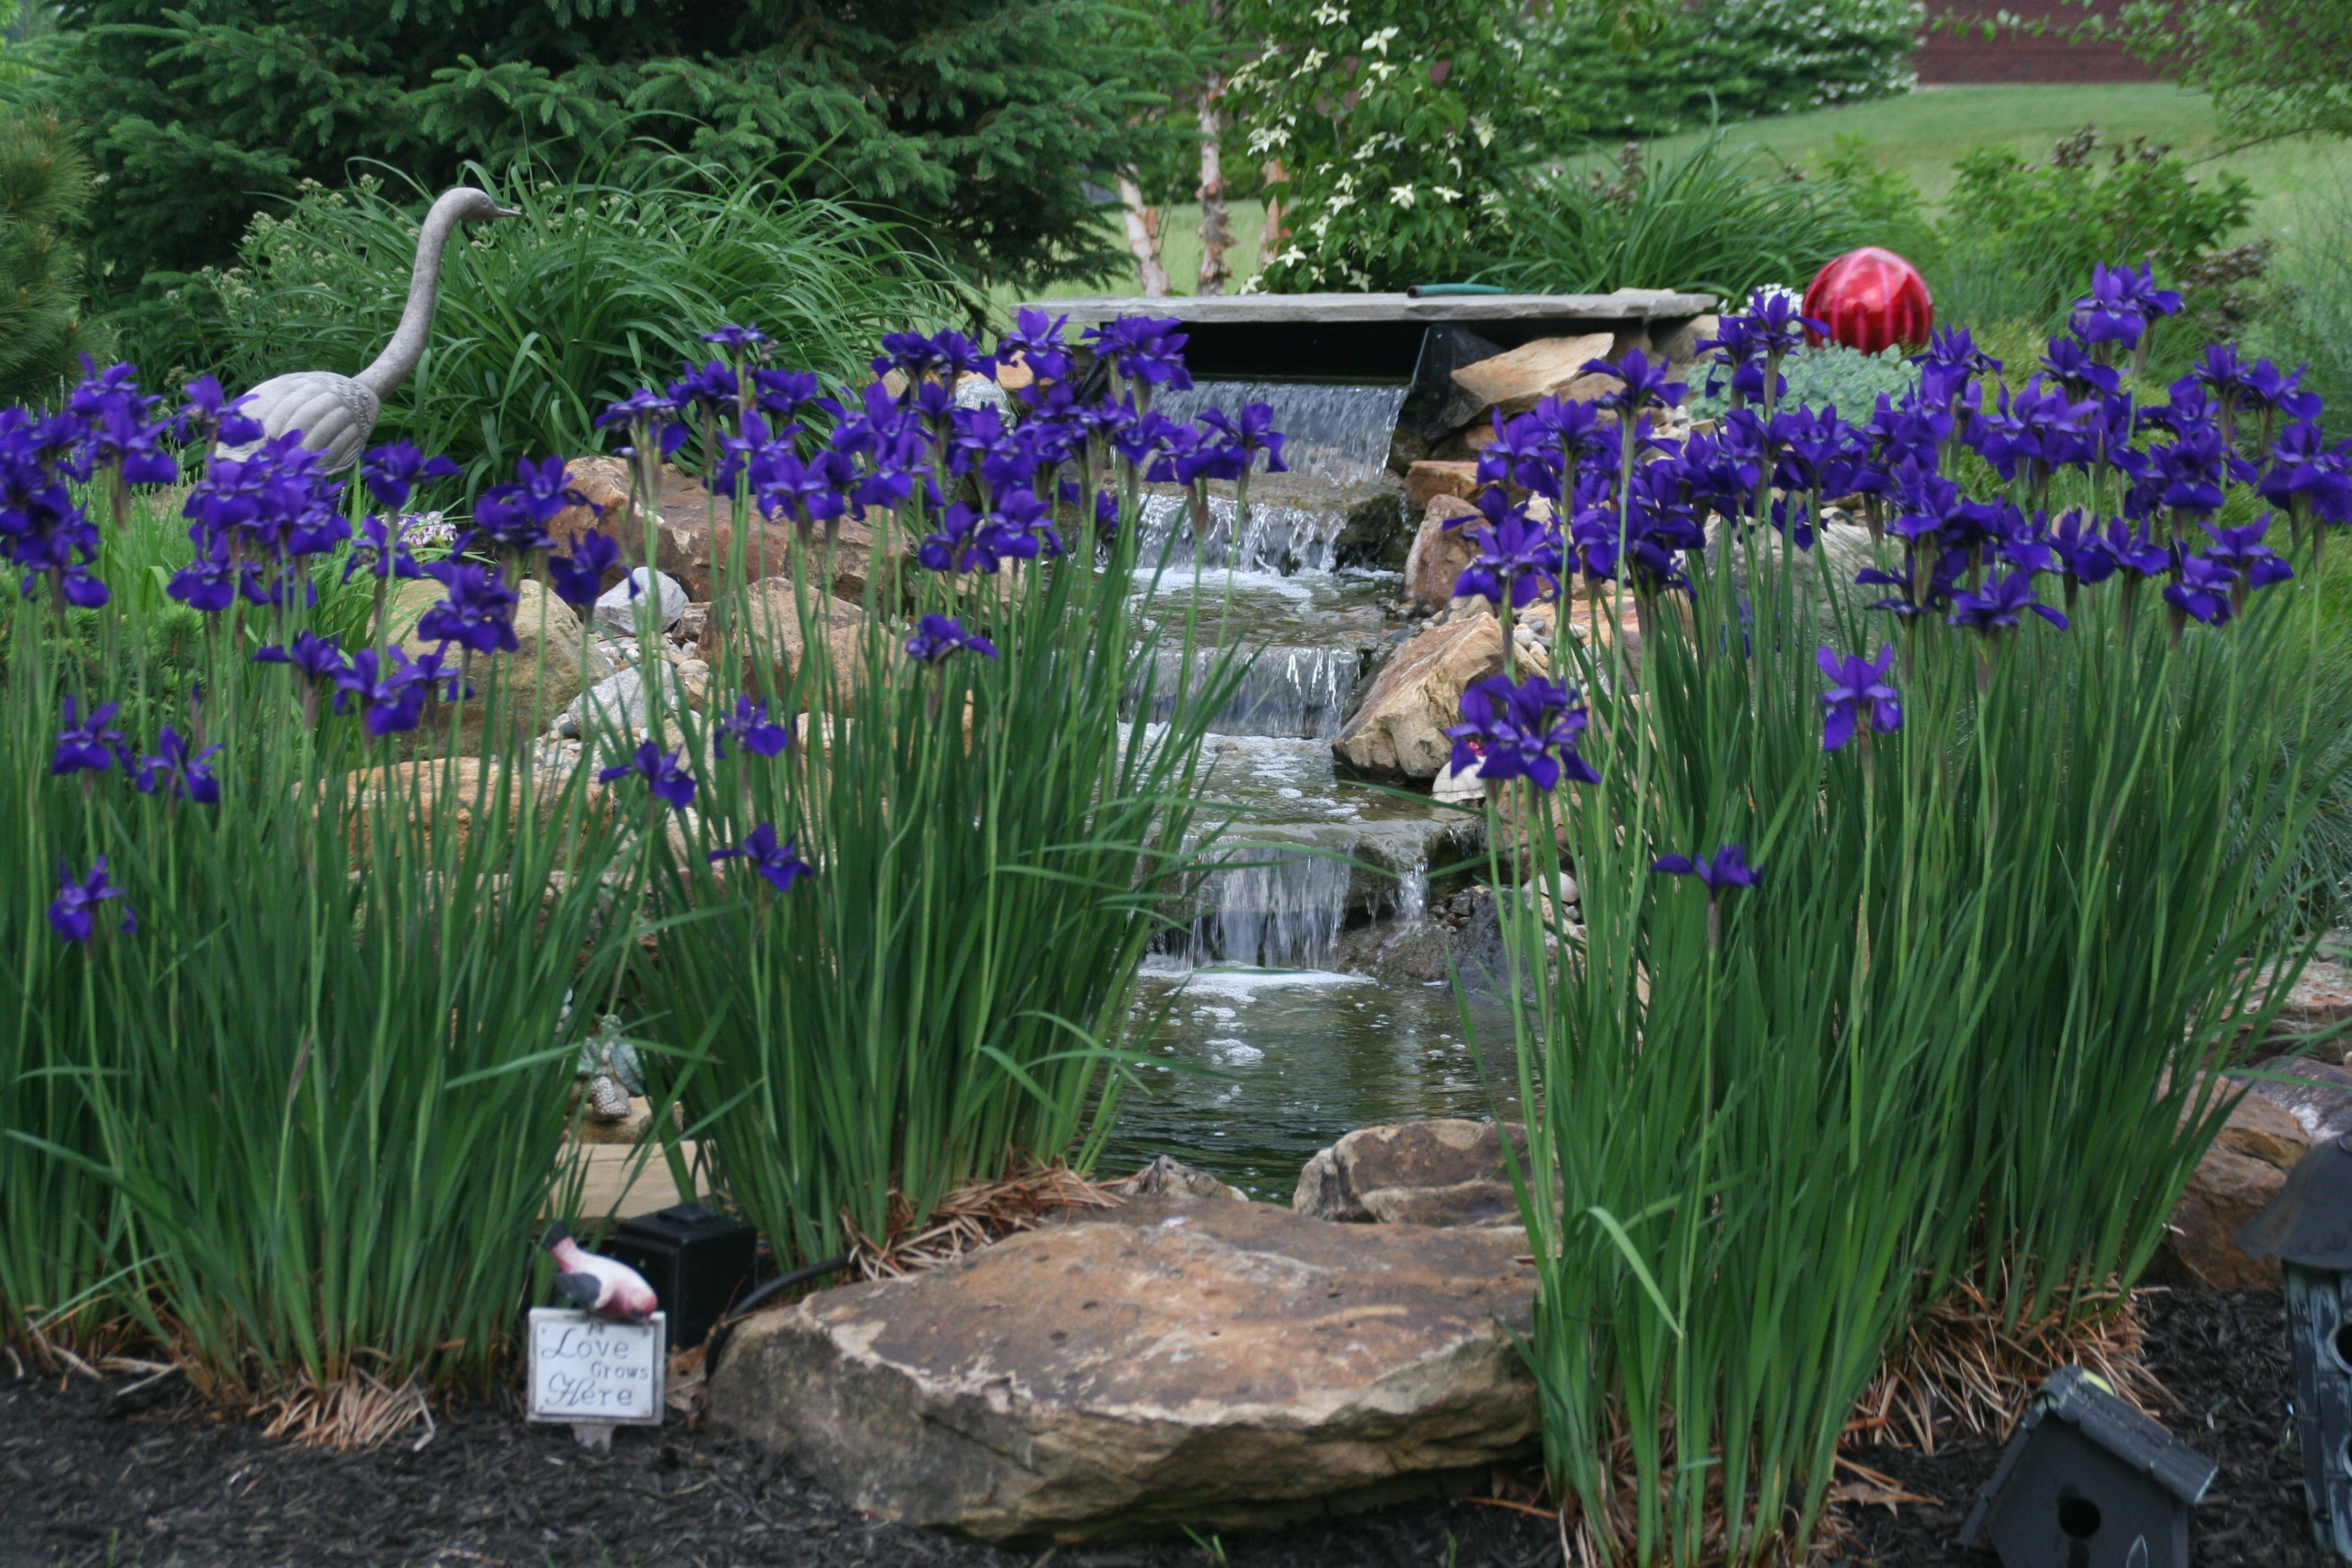 Garden water features  water feature surrounded by flowers  backyard  Pinterest  Water